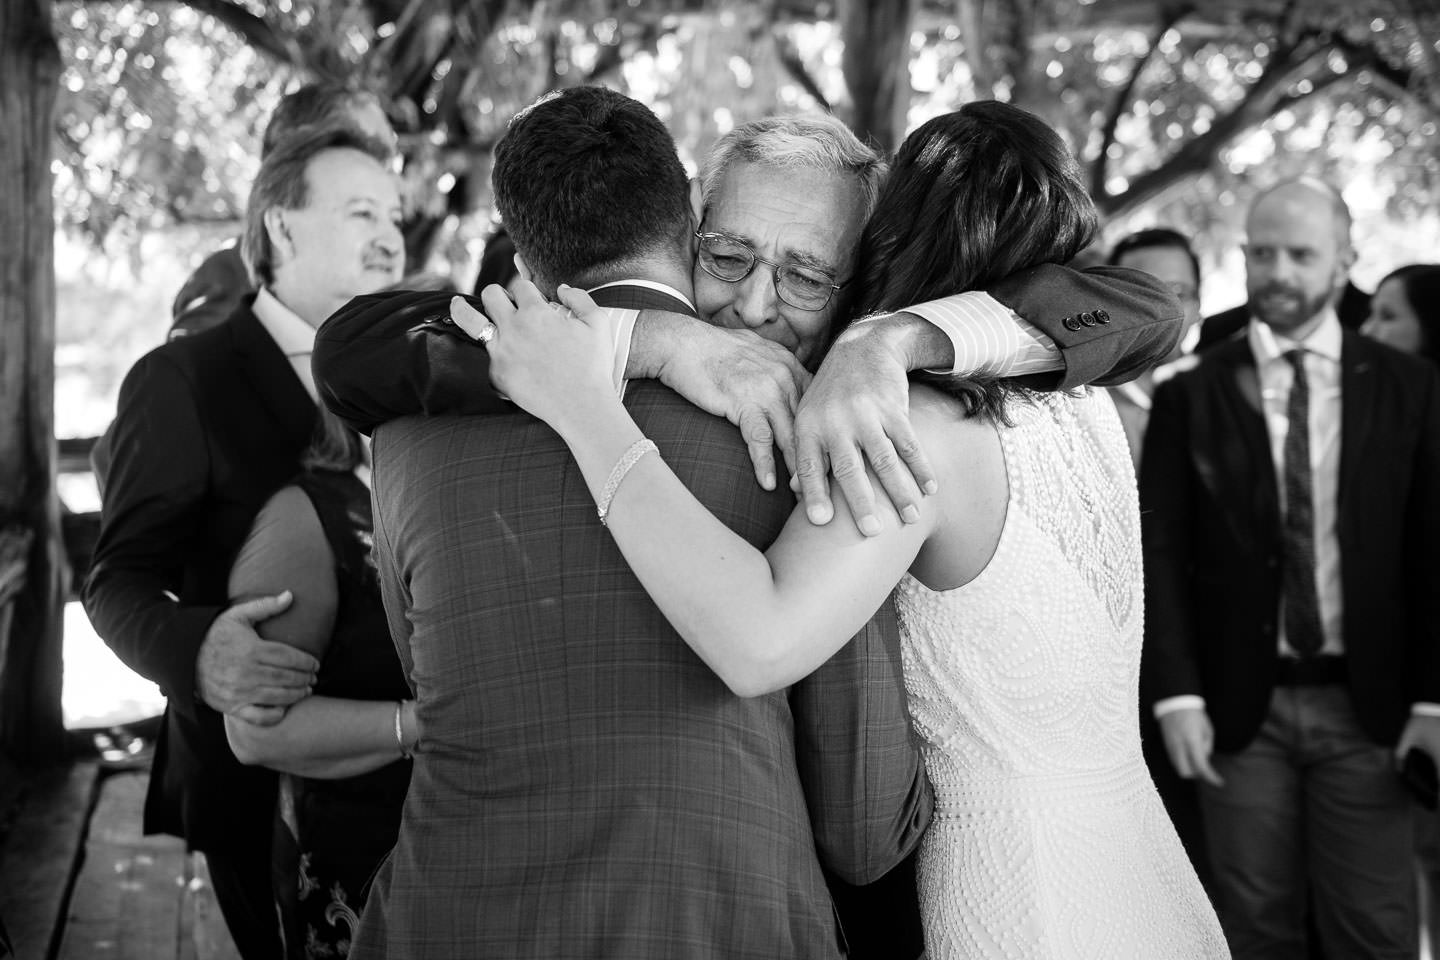 father of groom hugs bride and groom at wedding ceremony very emotional